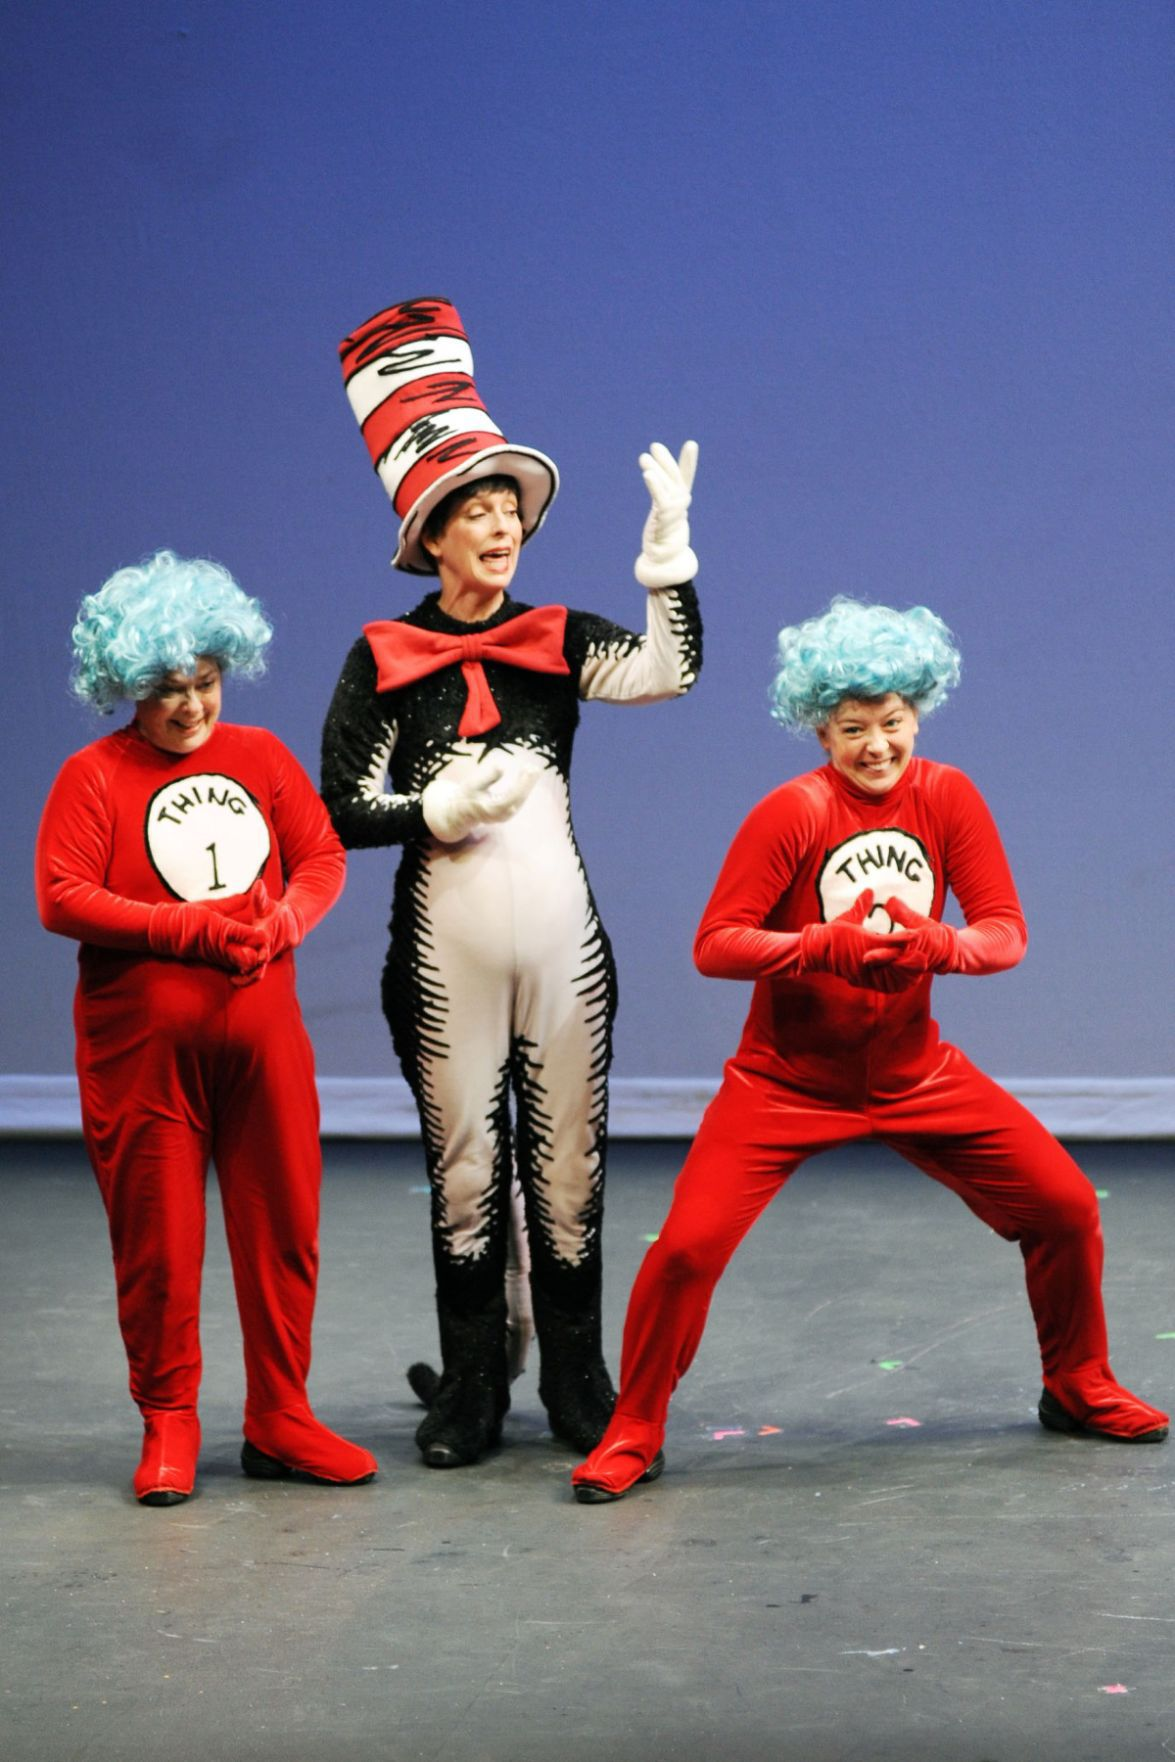 Dr. Seuss' 'The Cat In The Hat'